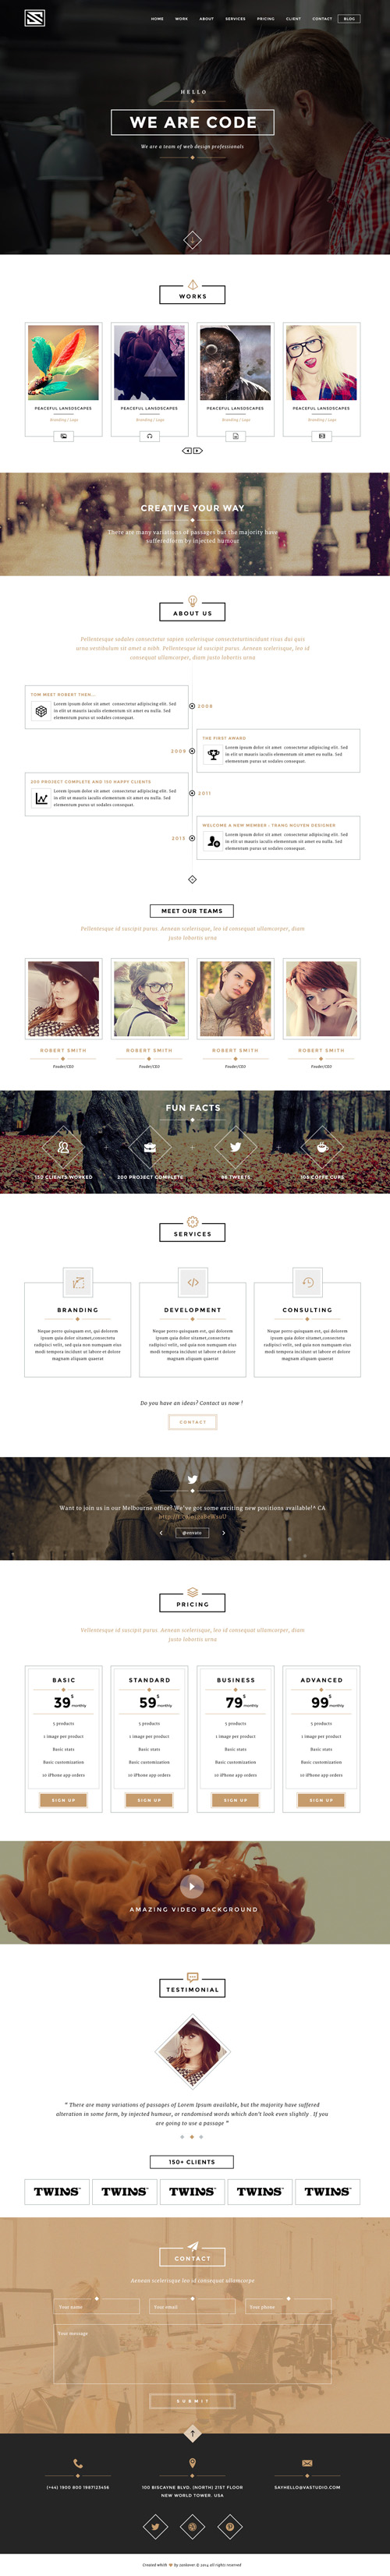 Vastudio - Creative One Page PSD Template